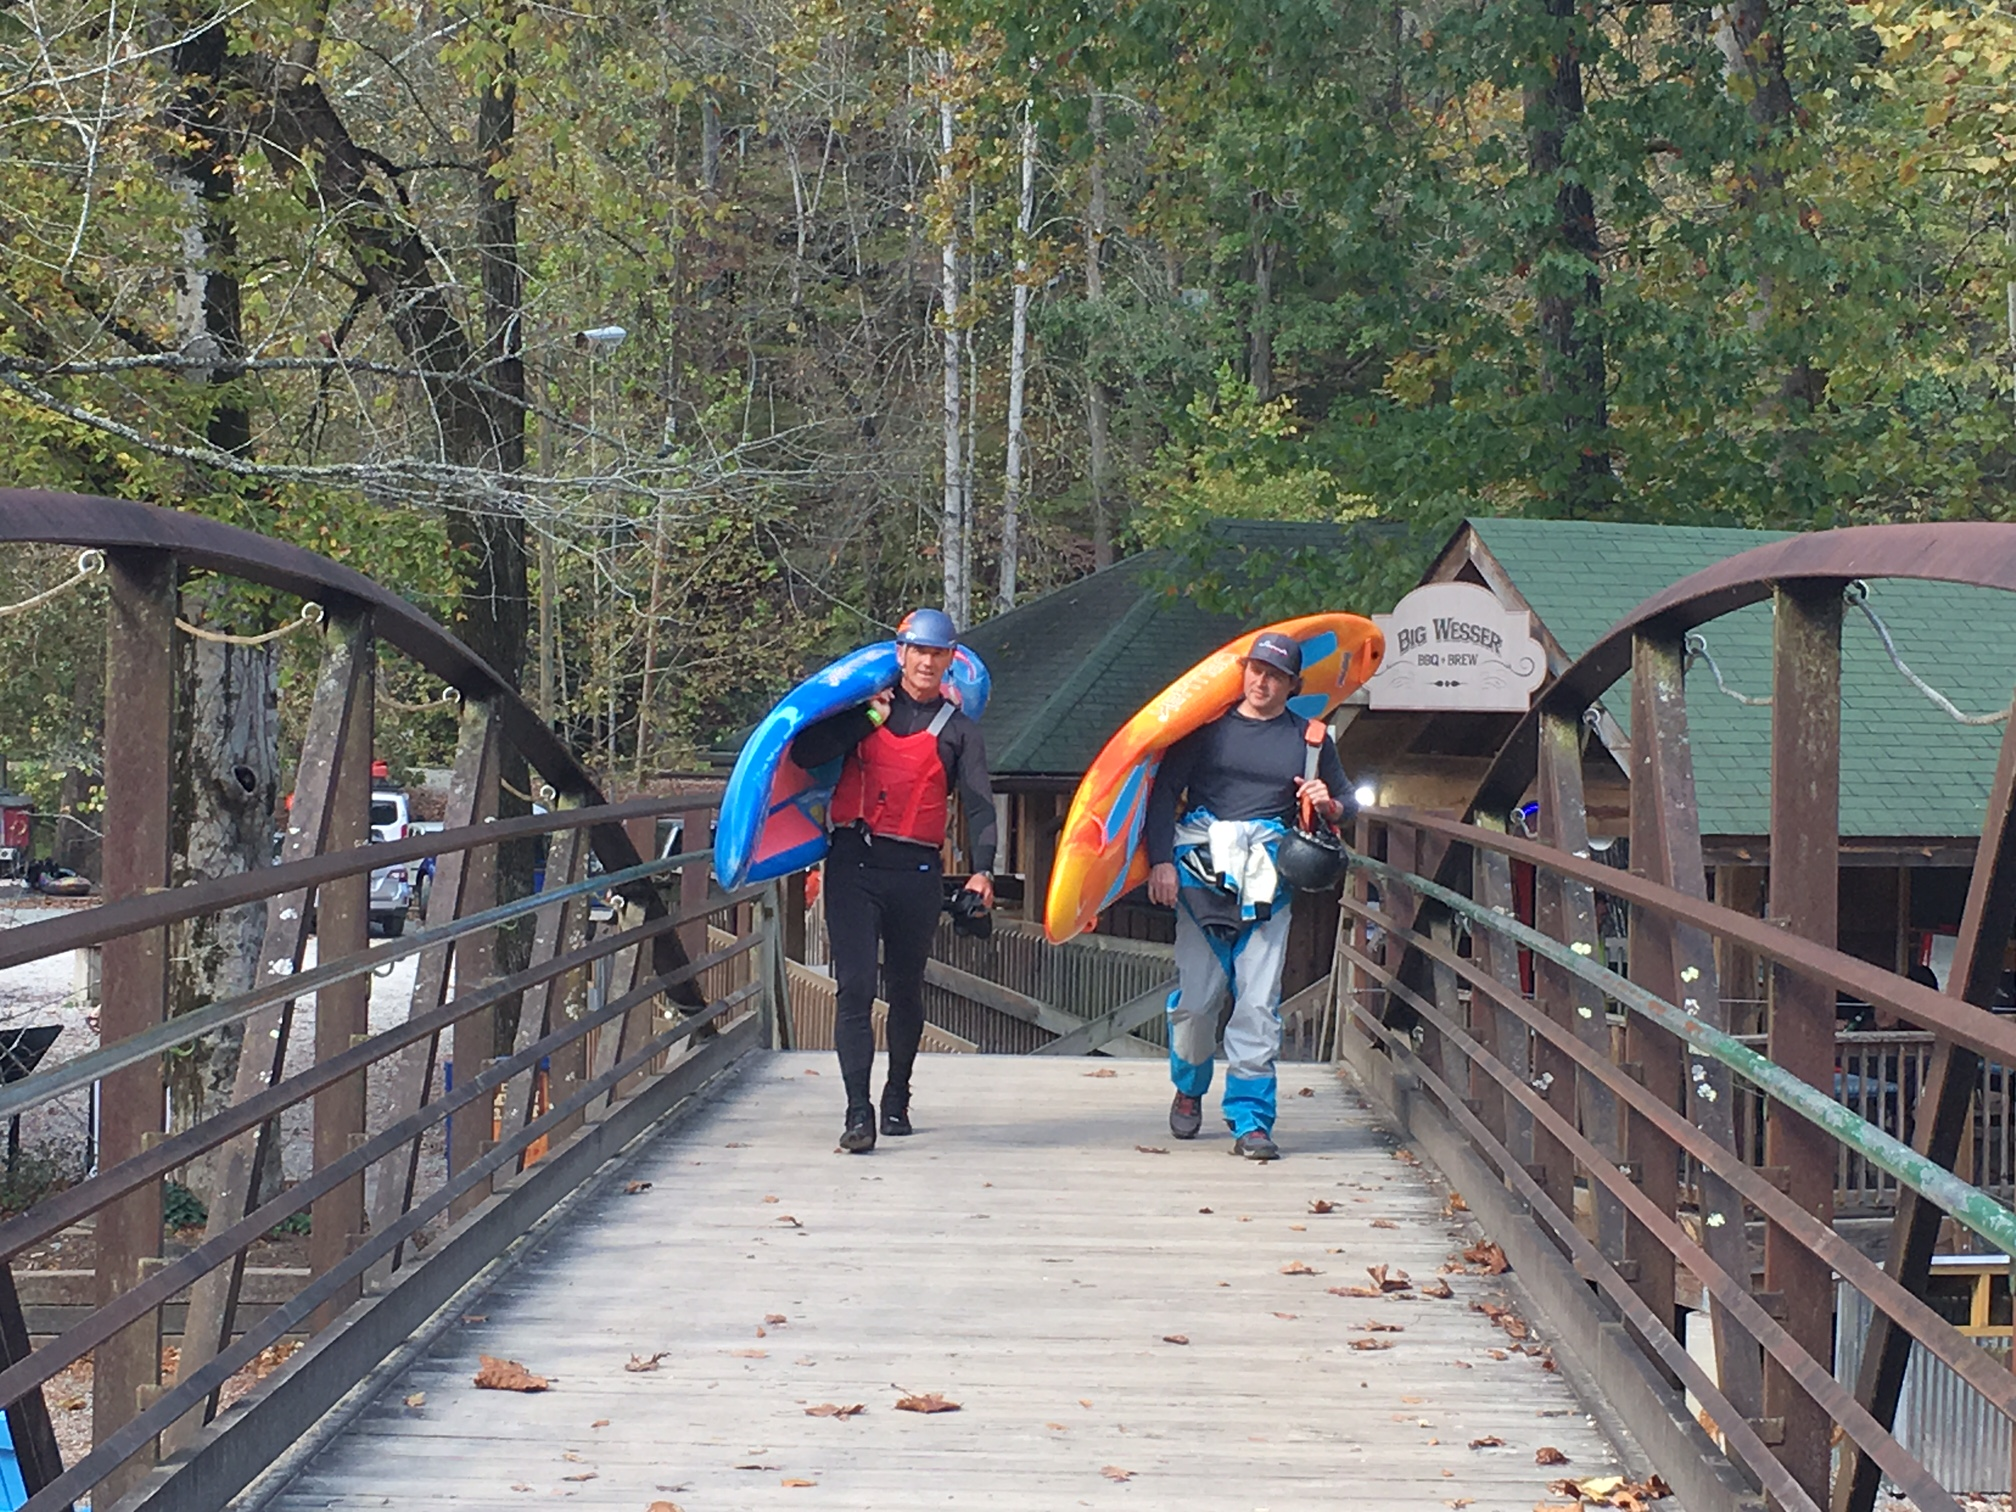 Chris Barlow and Adam Masters on the way the Nantahala Falls